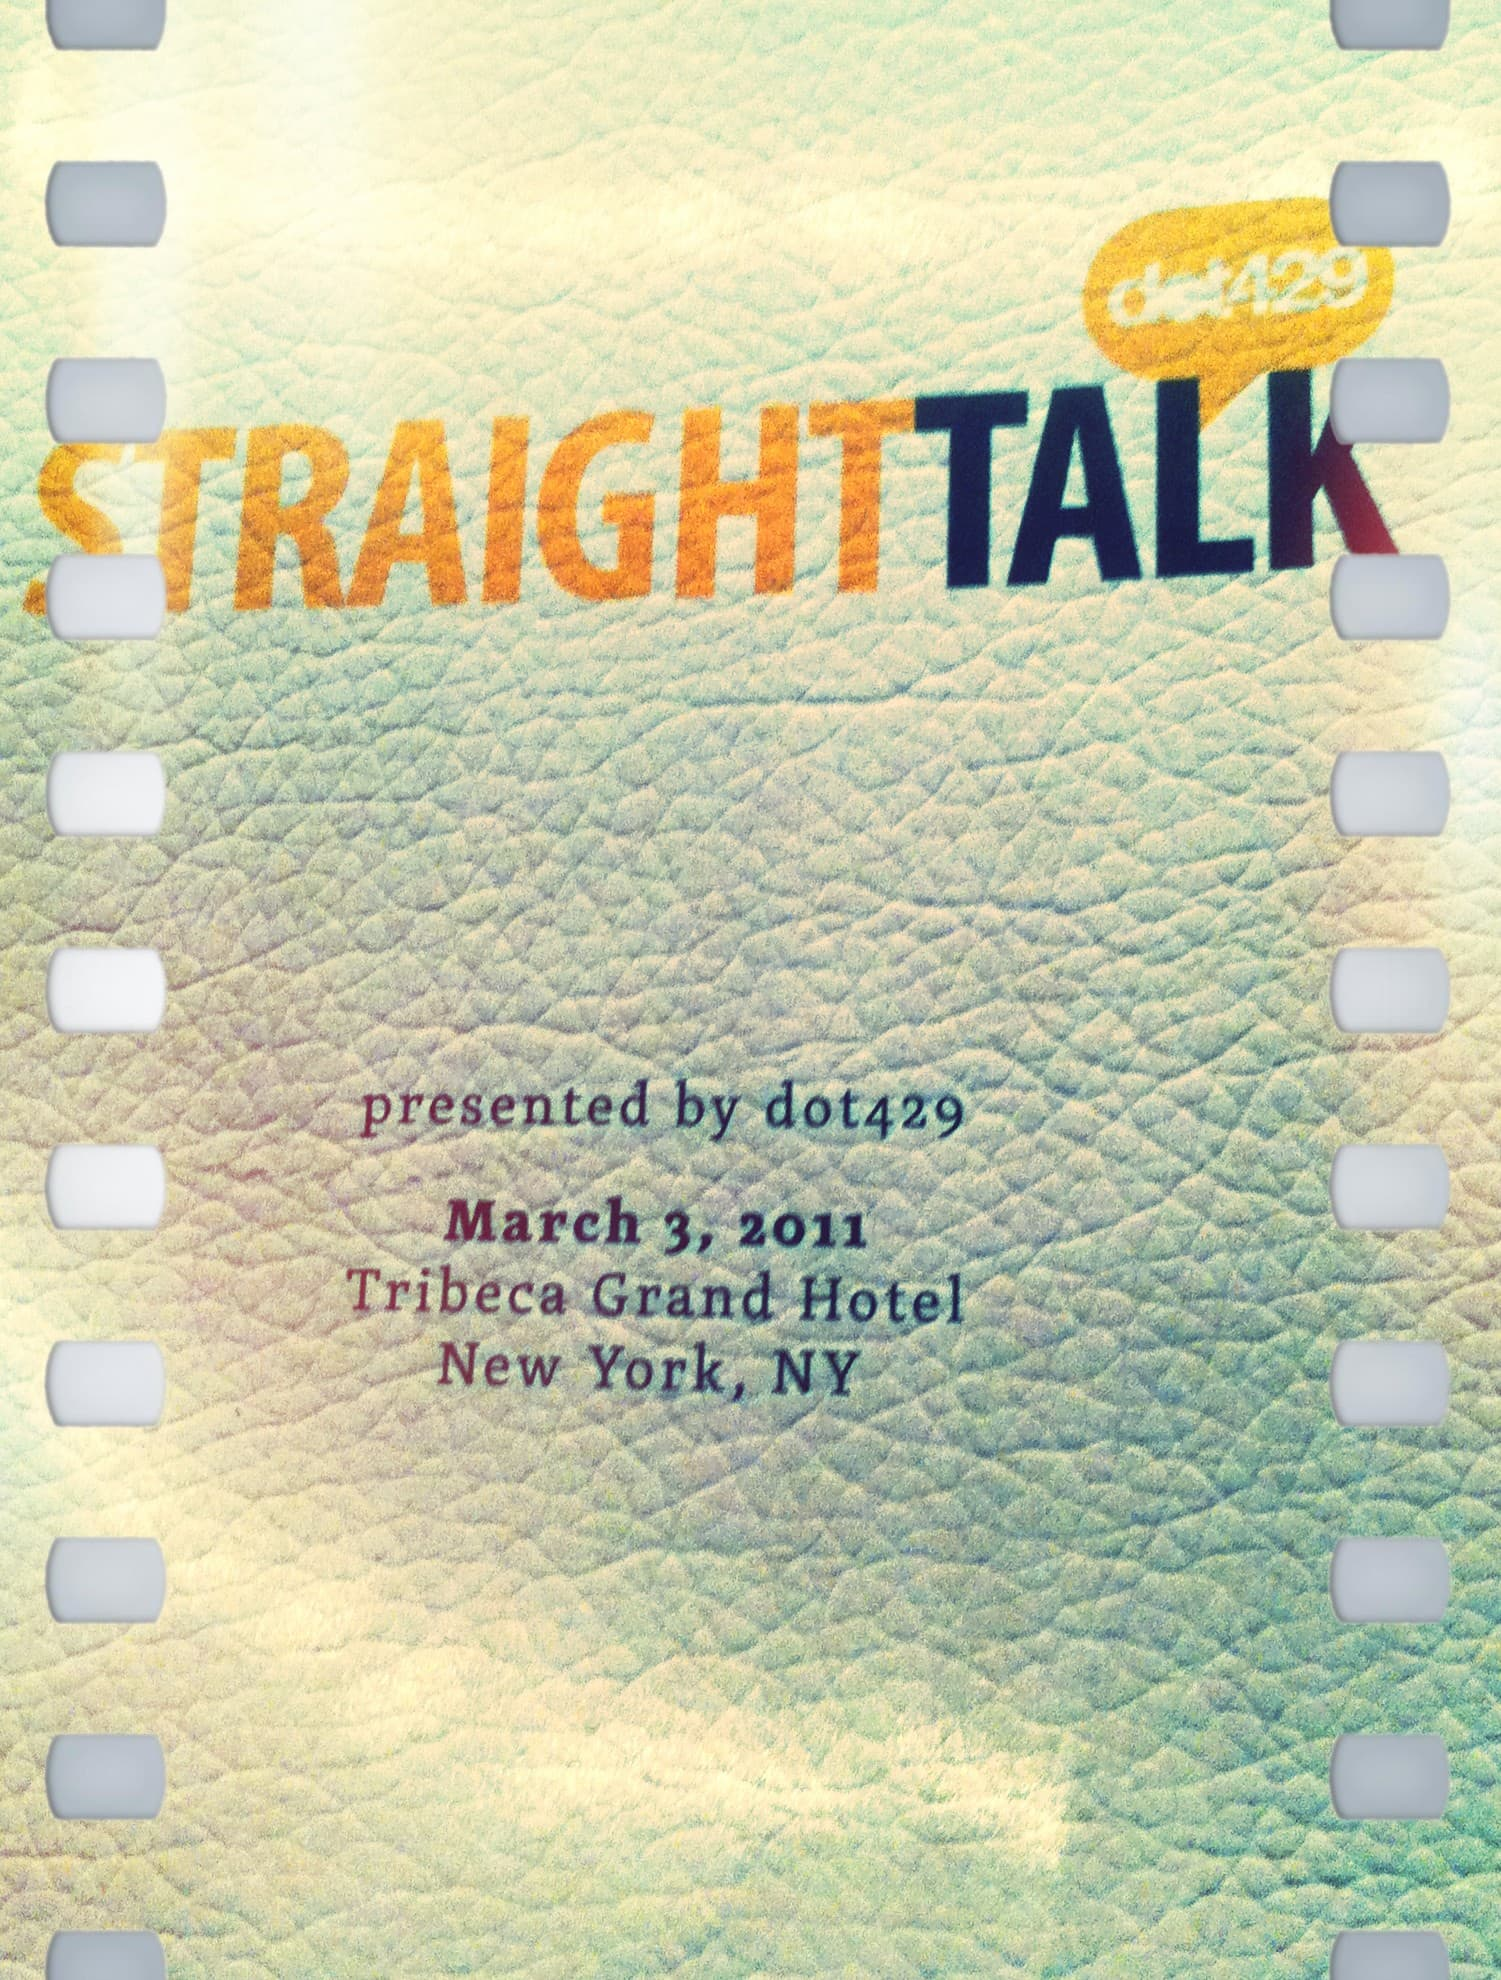 Straight Talk NYC